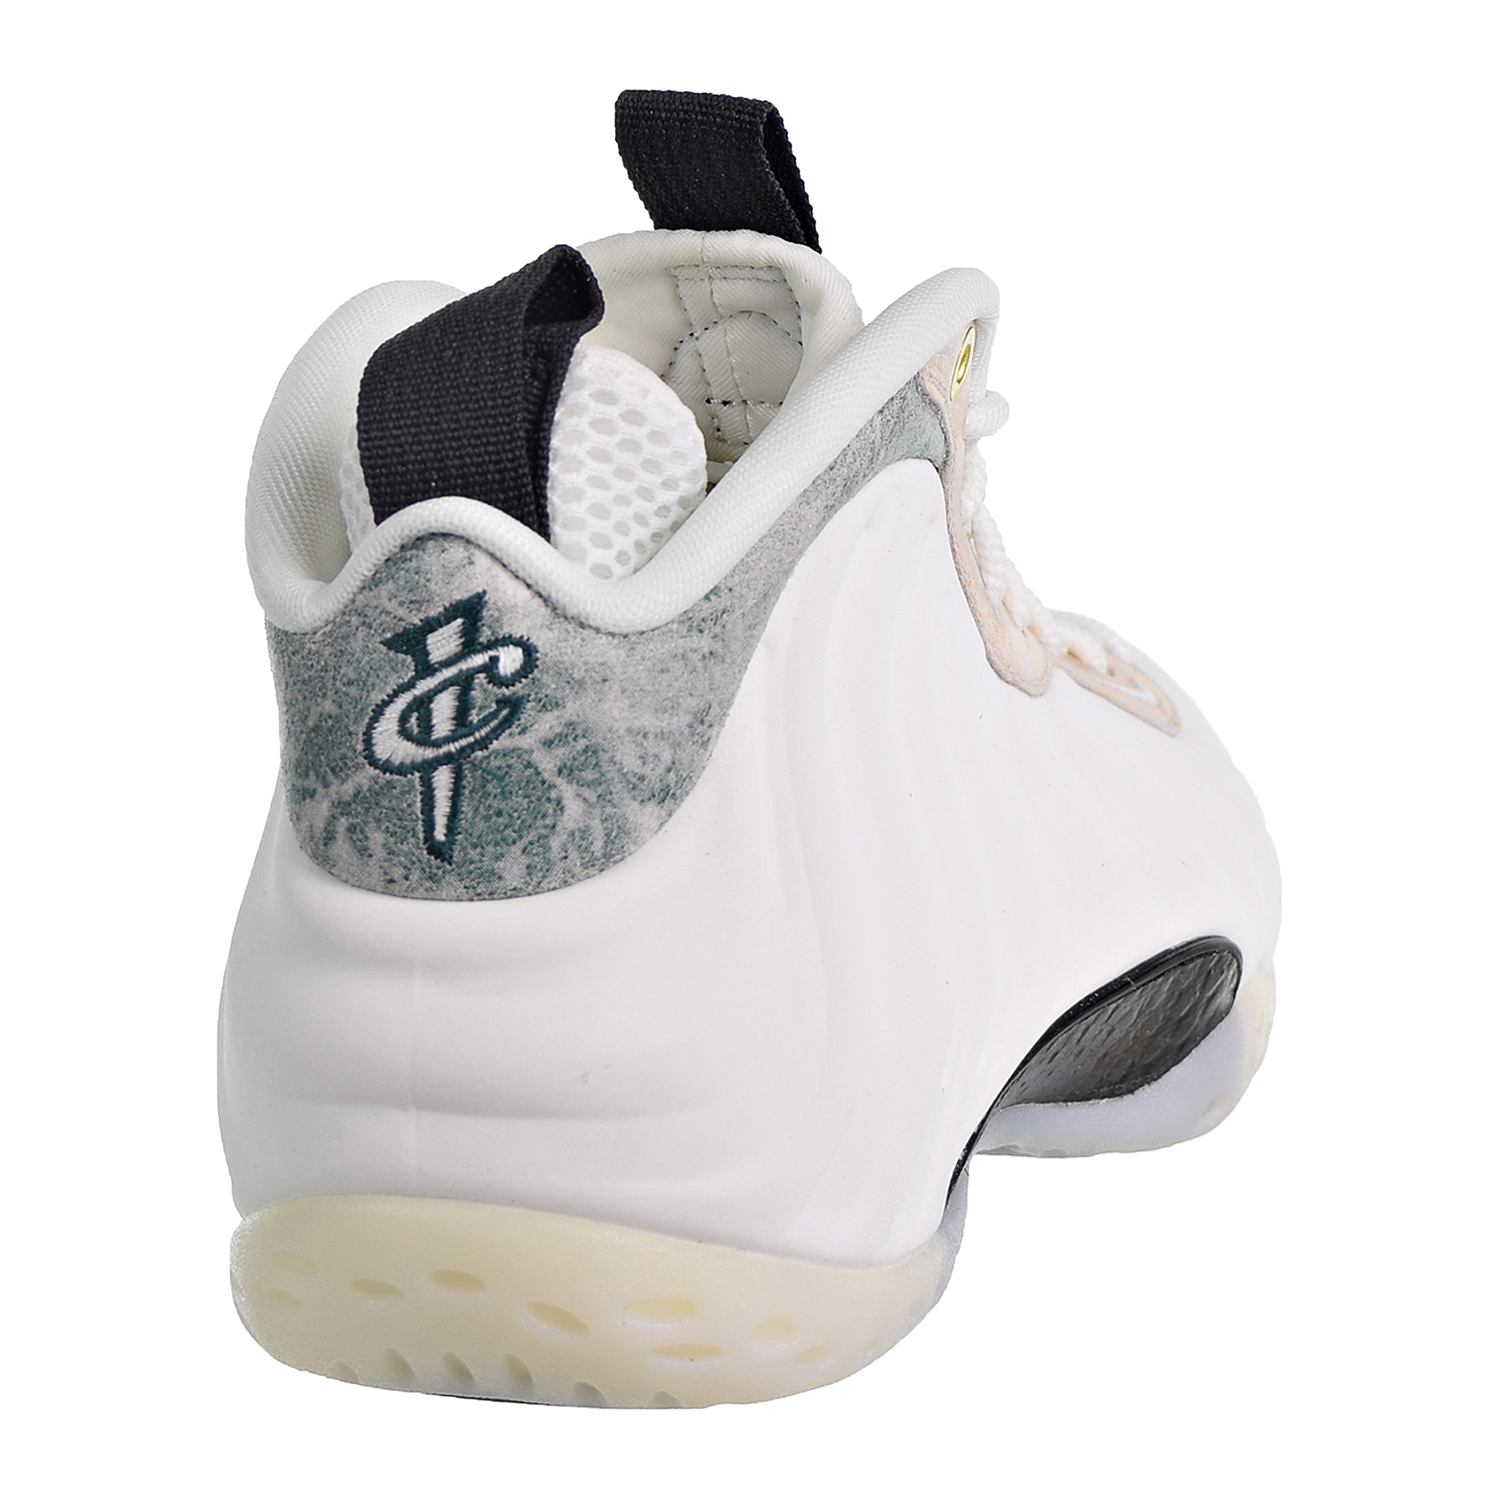 cheap for discount 7dddc 9fb76 Nike Foamposite One Women s Shoes Summit White Summit White aa3963-101